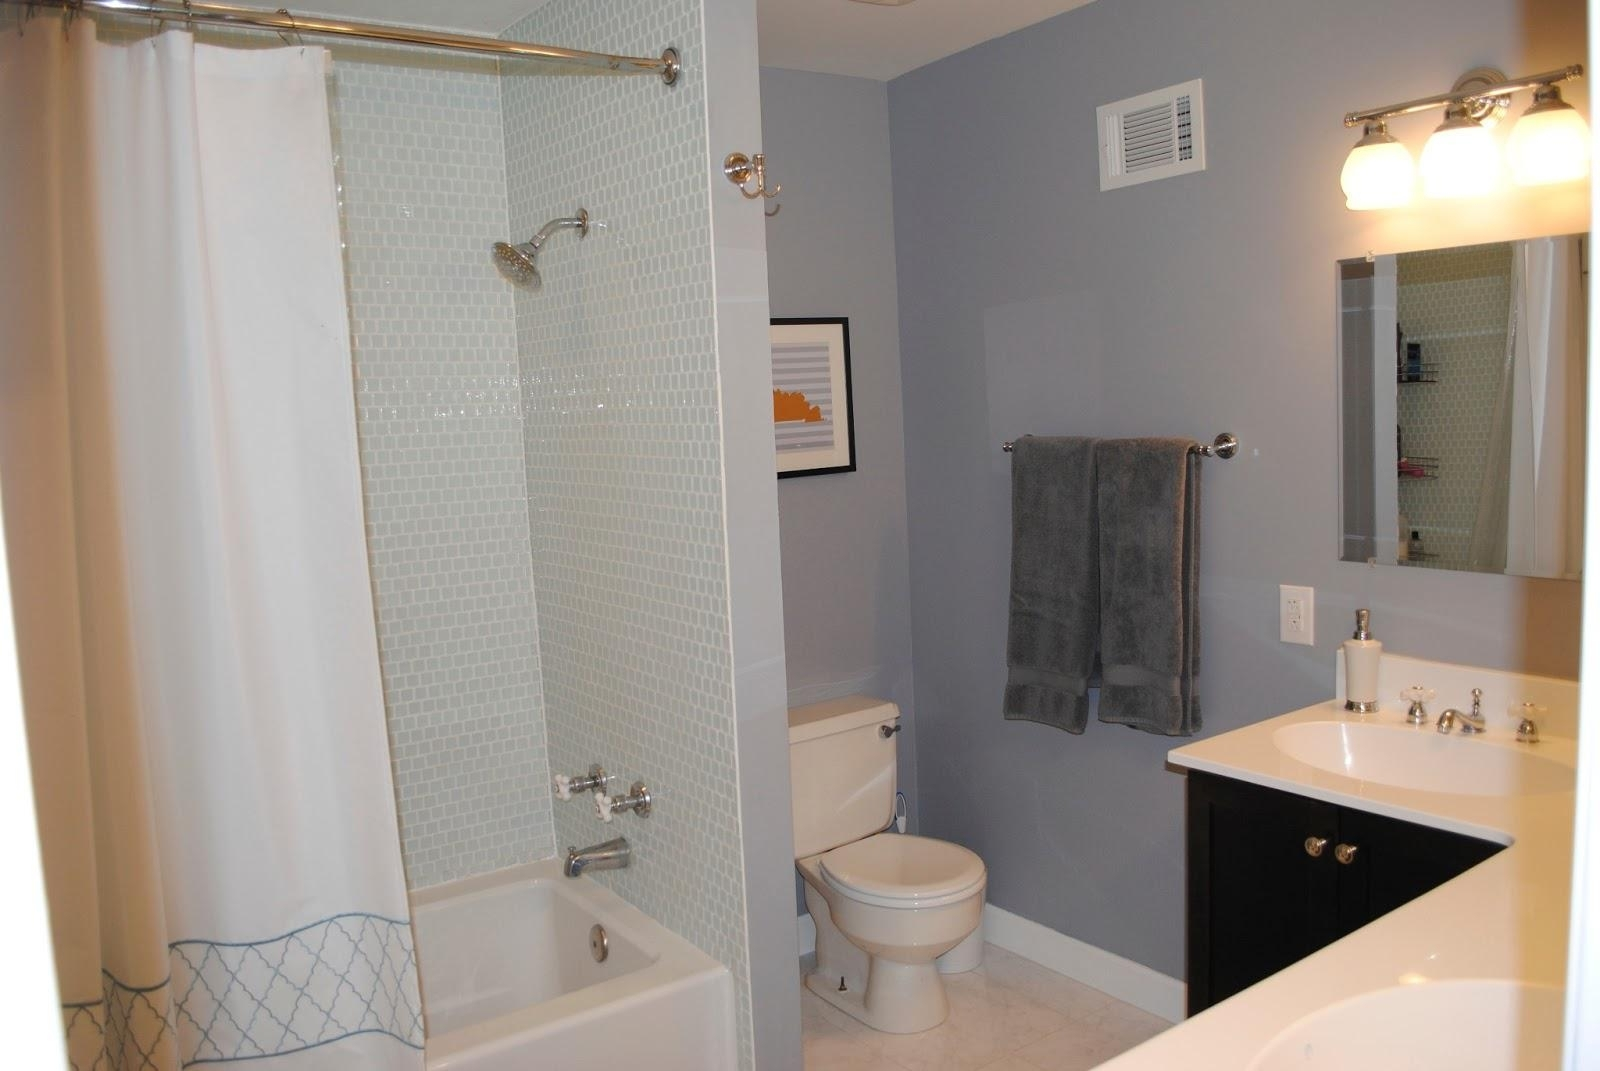 Bathroom Cabinets Over Toilet Lowes — Oscarsplace Furniture 20+ Lowe'S Creative Bathroom Inspirations